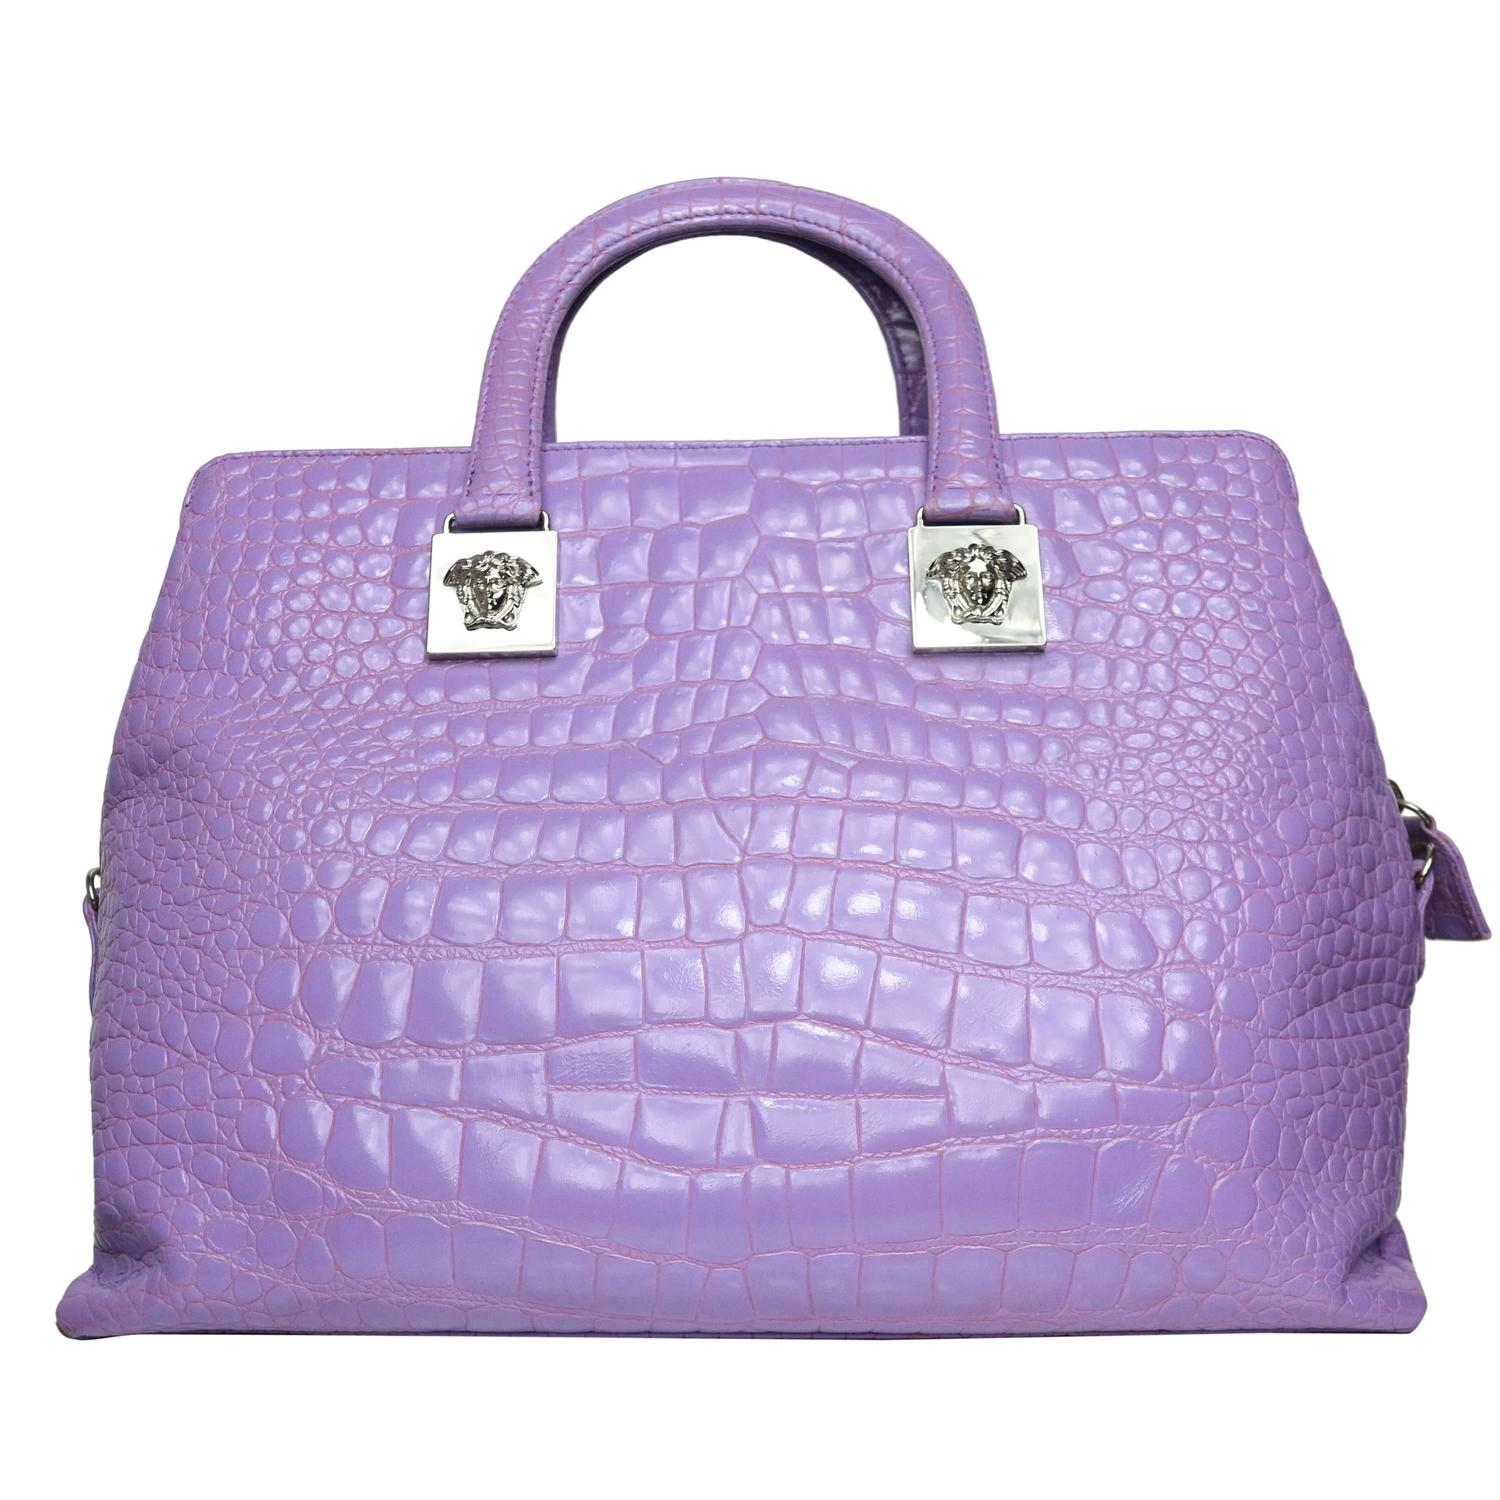 Gianni Versace Couture Purple Croc Embossed Enamel Leather Handbag For Sale  at 1stdibs